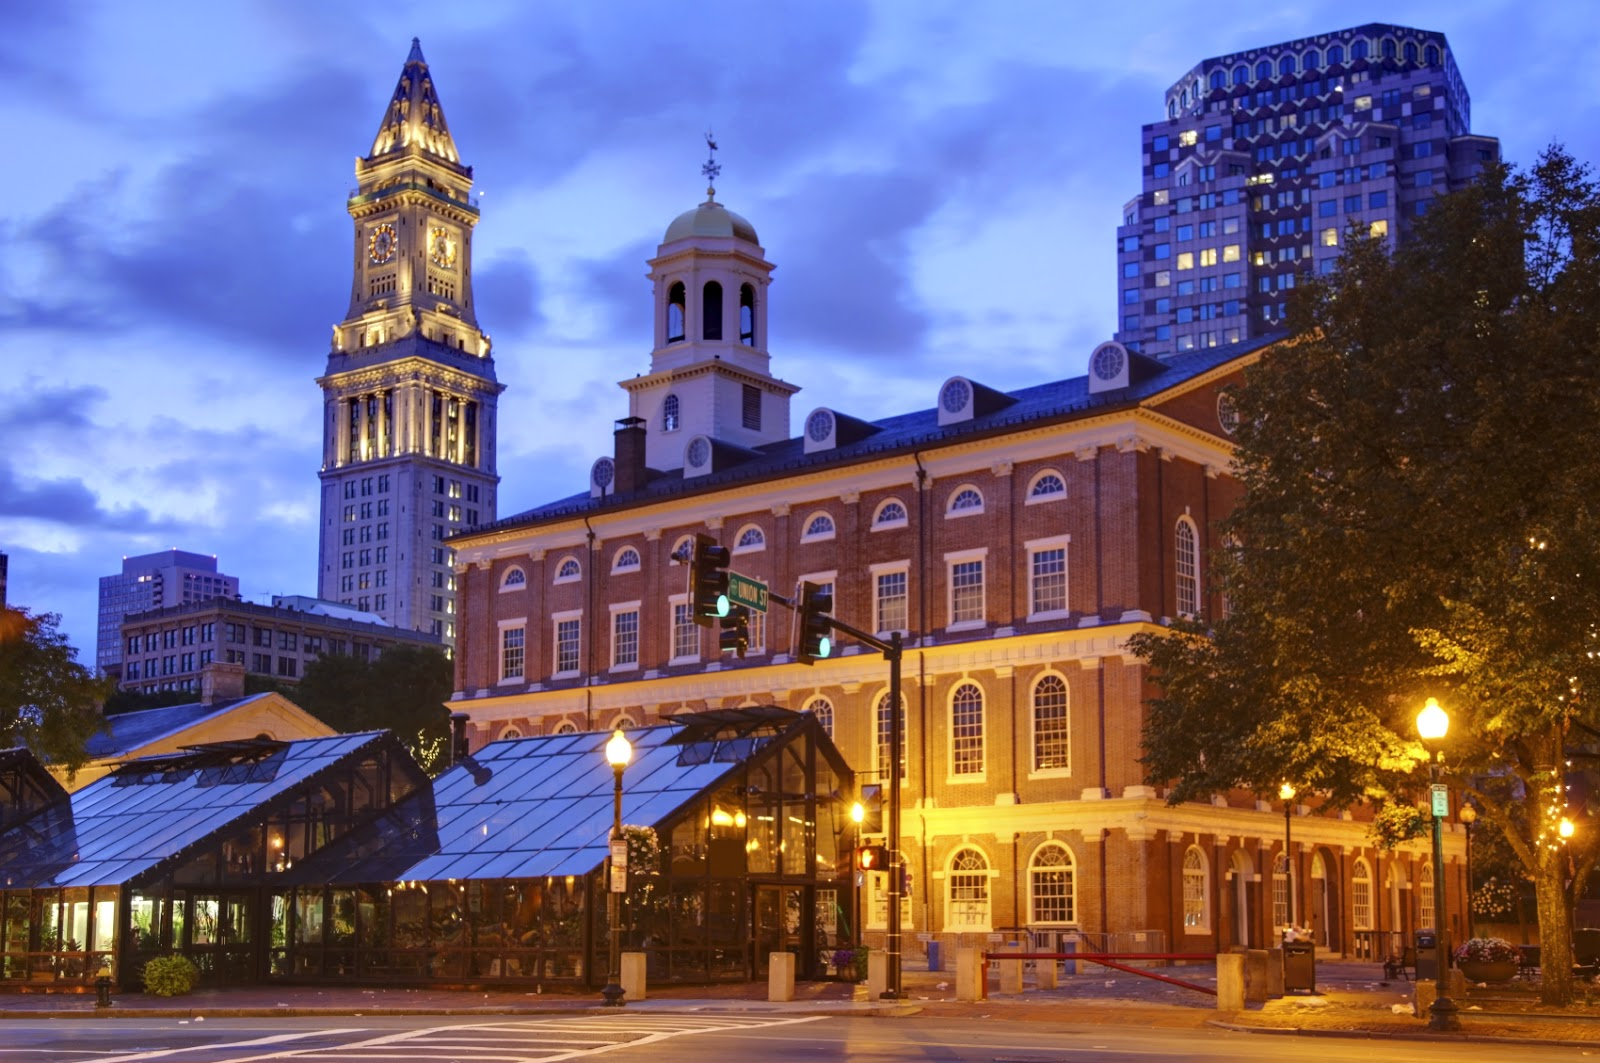 Faneuil Hall Marketplace (Boston, Massachusetts)